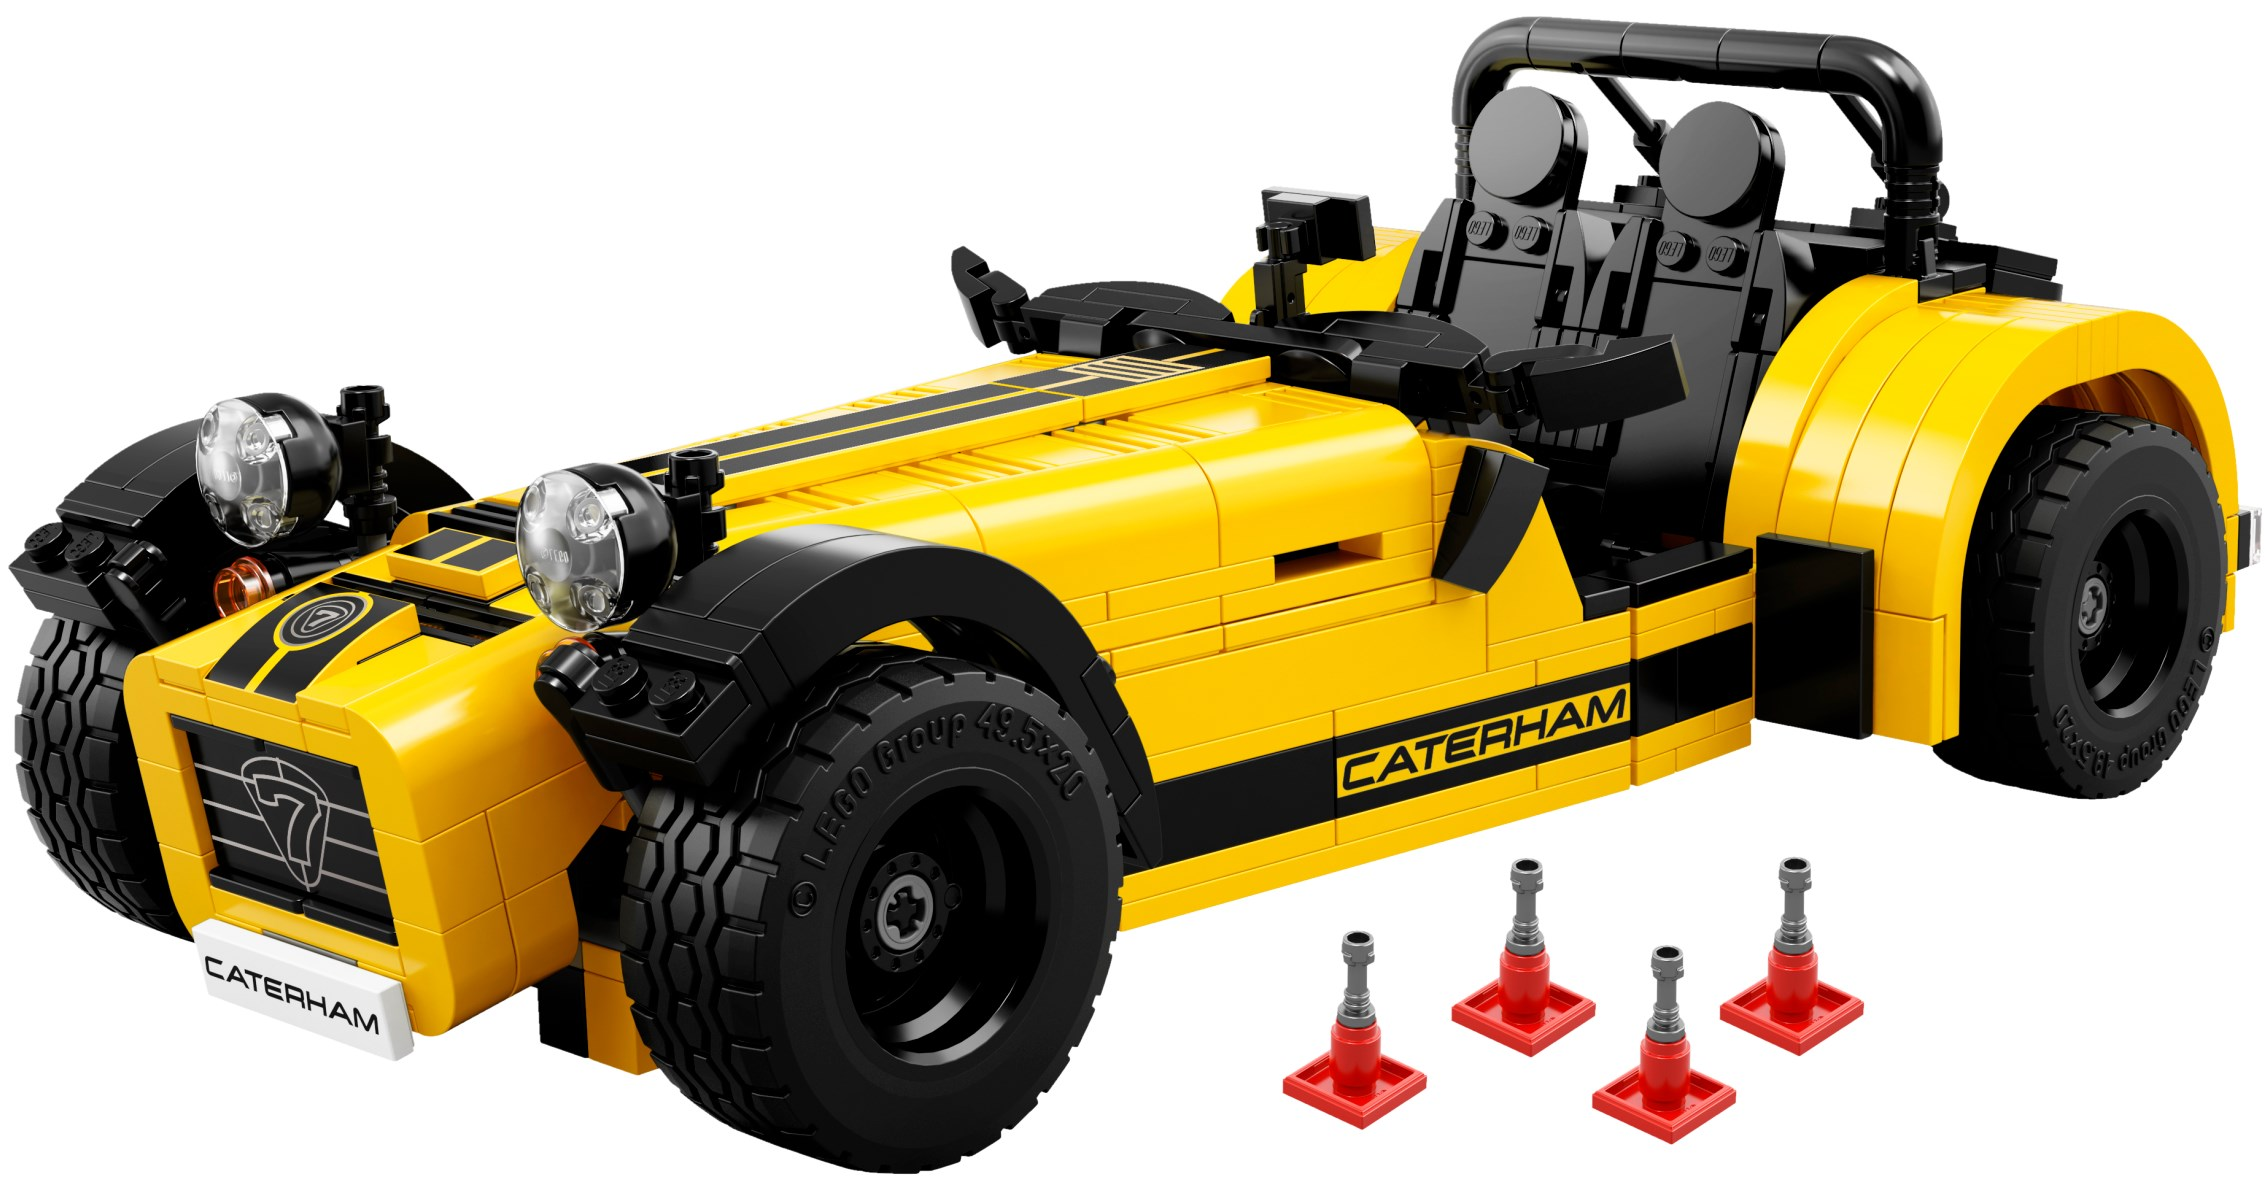 lego 21307 ideas caterham super seven 620r official hi res photos on swiss site minifigure. Black Bedroom Furniture Sets. Home Design Ideas